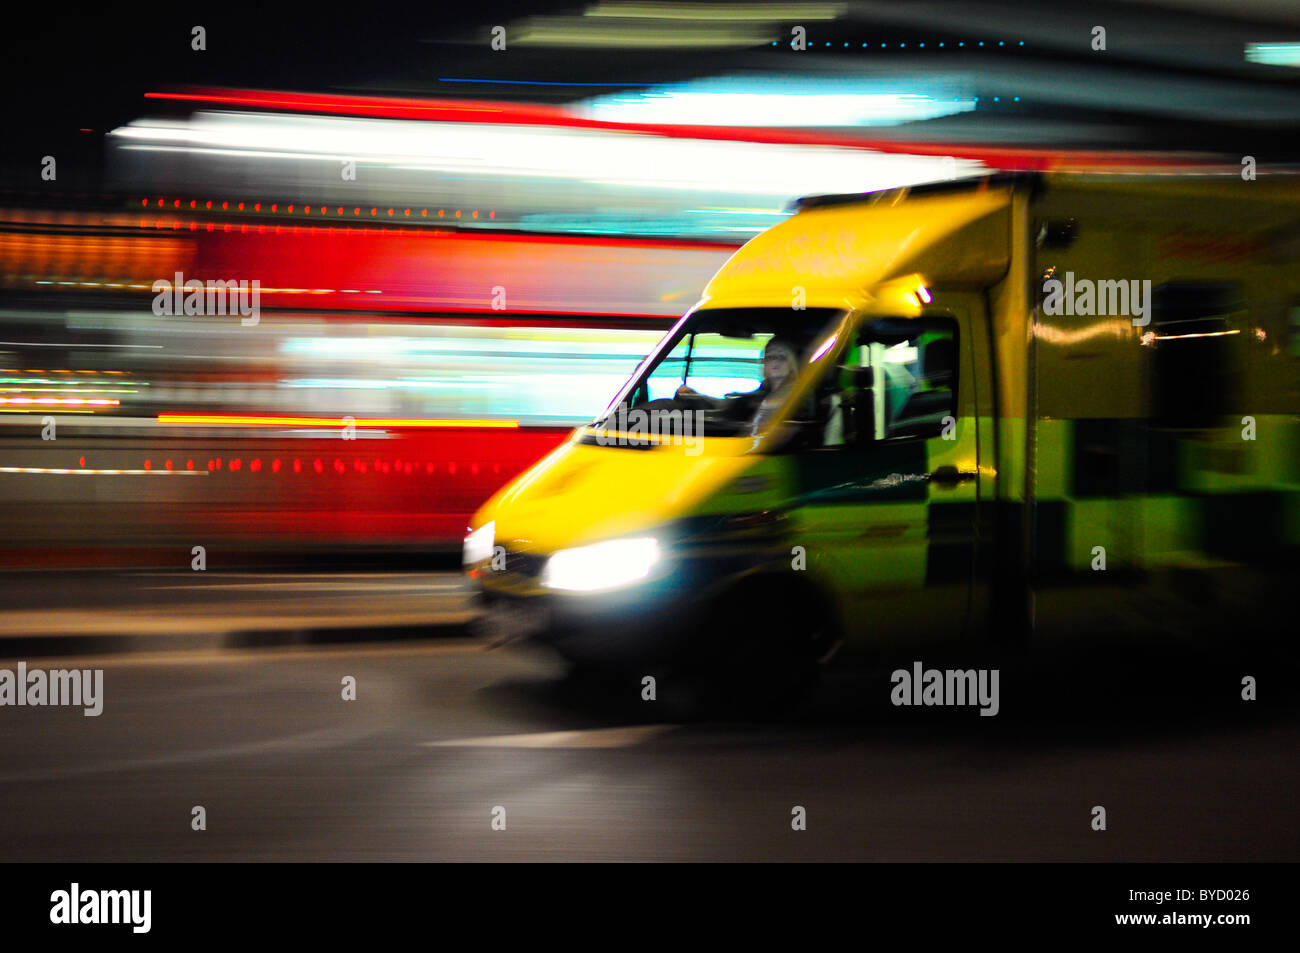 Ambulance rushing past a red bus with motion blur - Stock Image